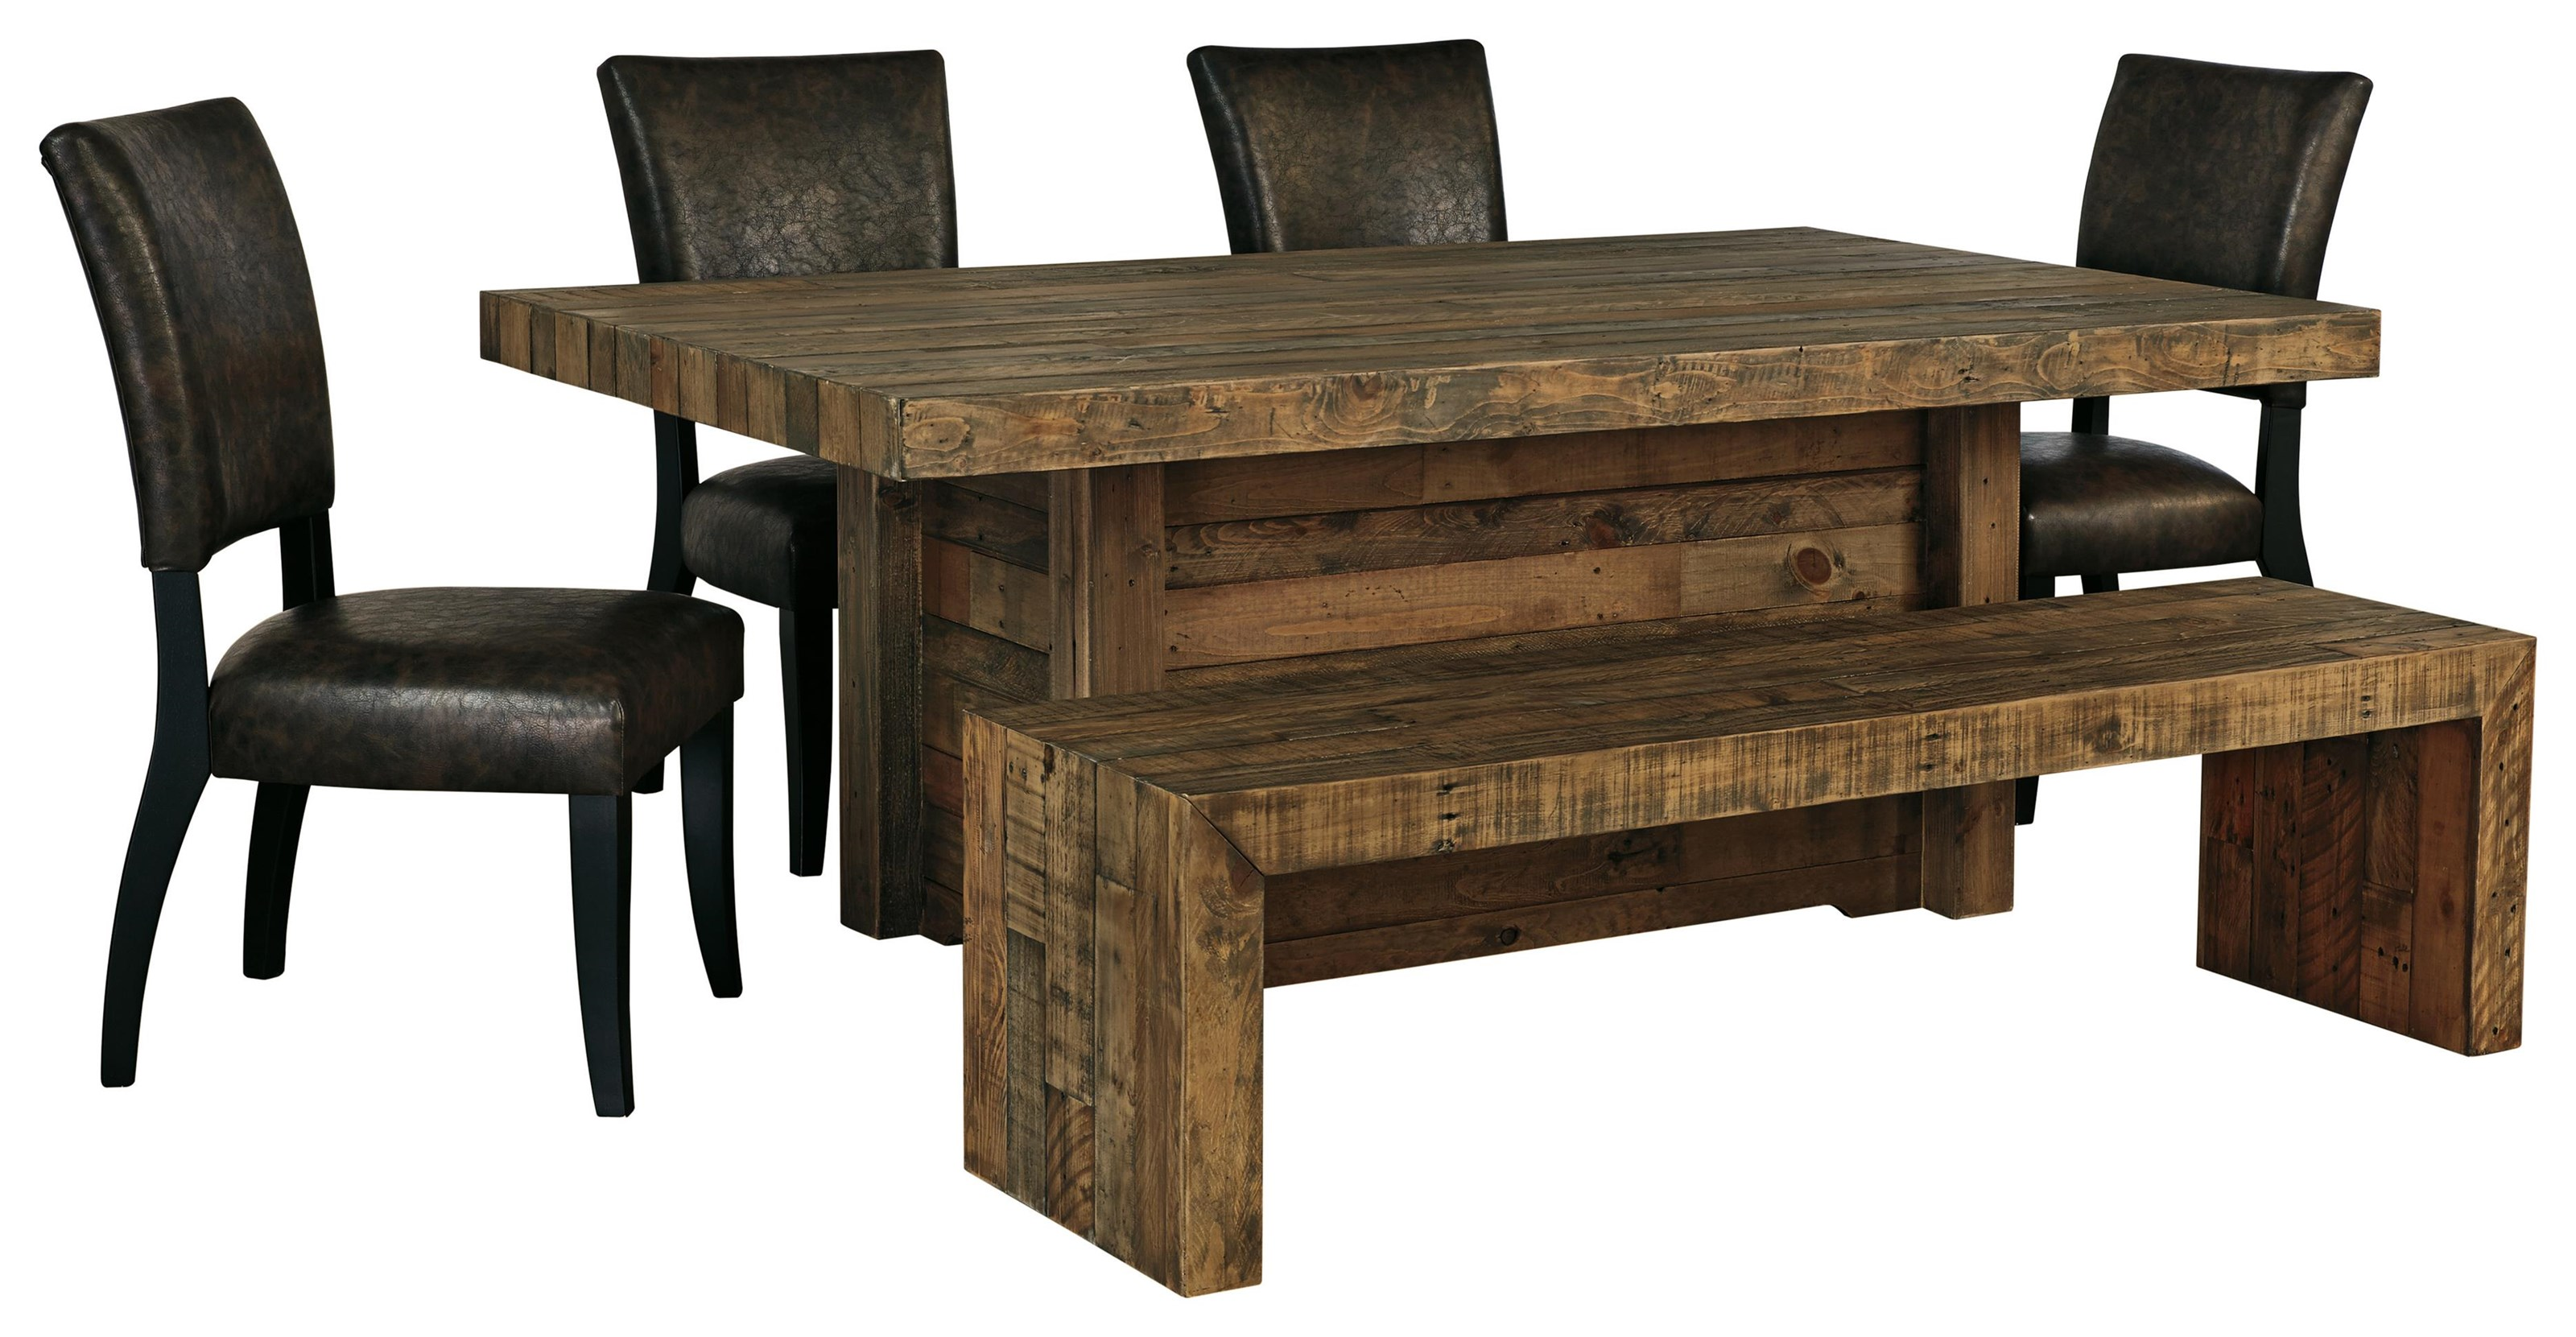 Sommerford Sommerford 5-Piece Dining Set by Ashley at Morris Home